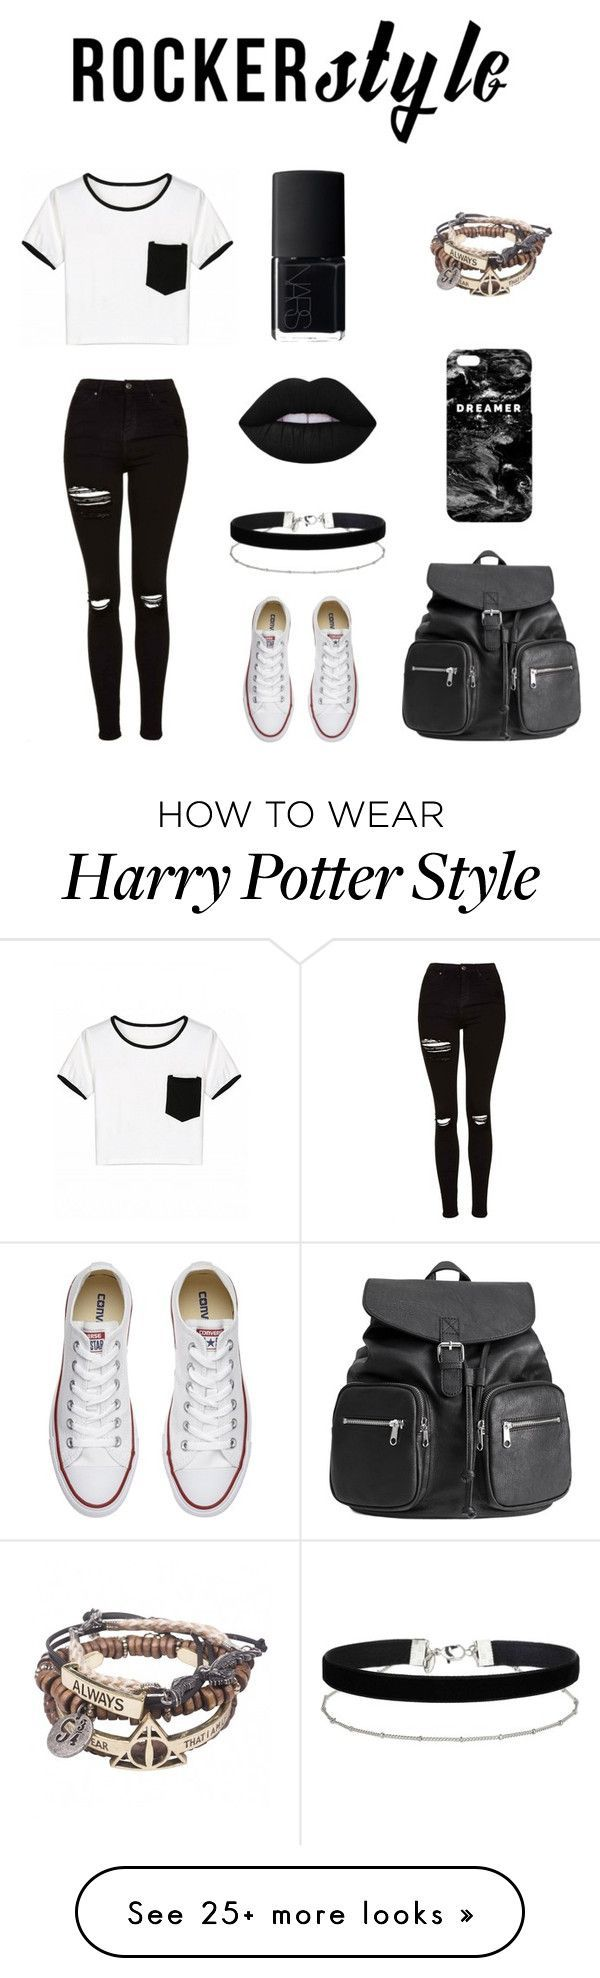 """"" by megamindxx on Polyvore featuring Topshop, Converse, Mr. Gugu & Miss Go, Miss Selfridge, Lime Crime, NARS Cosmetics, rockerchic and rockerstyle ❤"